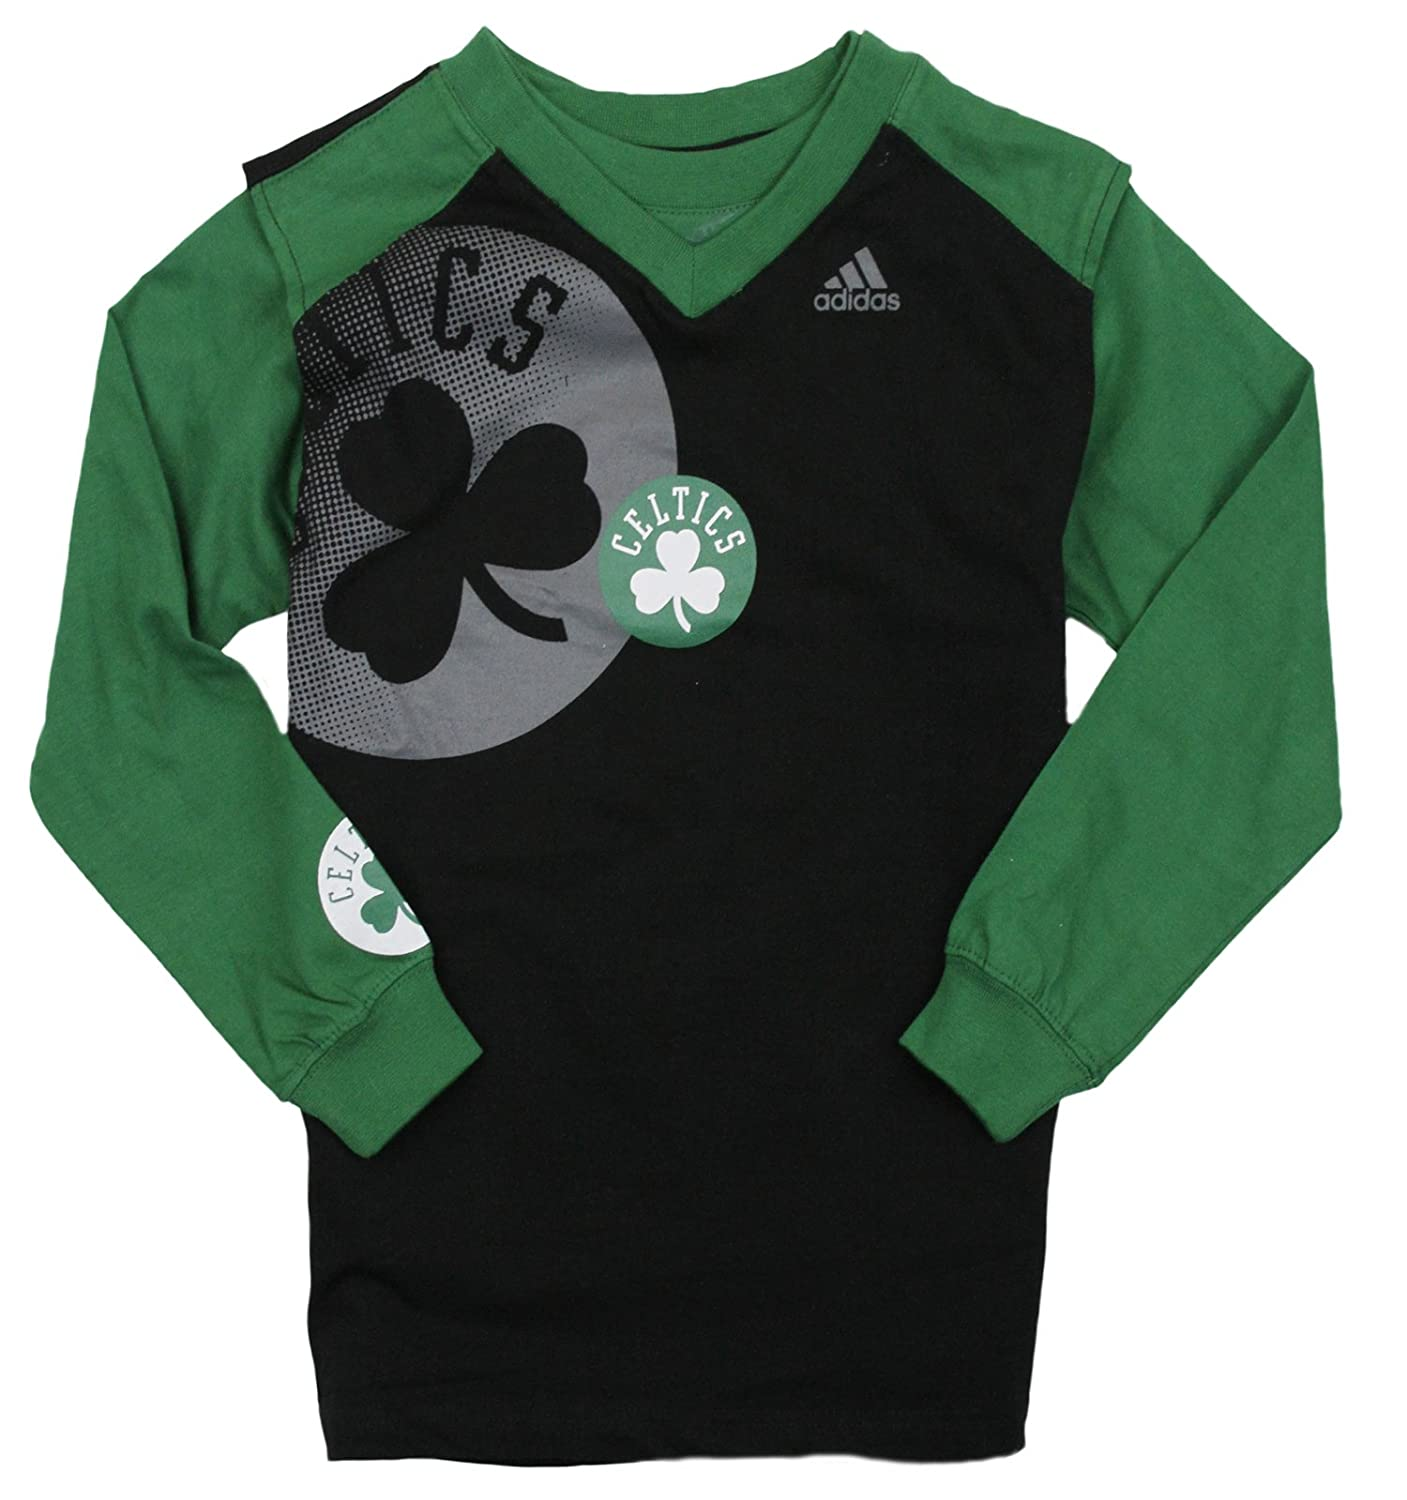 Boston Celtics in NBA Big NBA Boys Boys 3 - in - 1マッスルシャツ XL B00XNSPISK, カー用品日用品のホームセンター:29814fee --- itxassou.fr